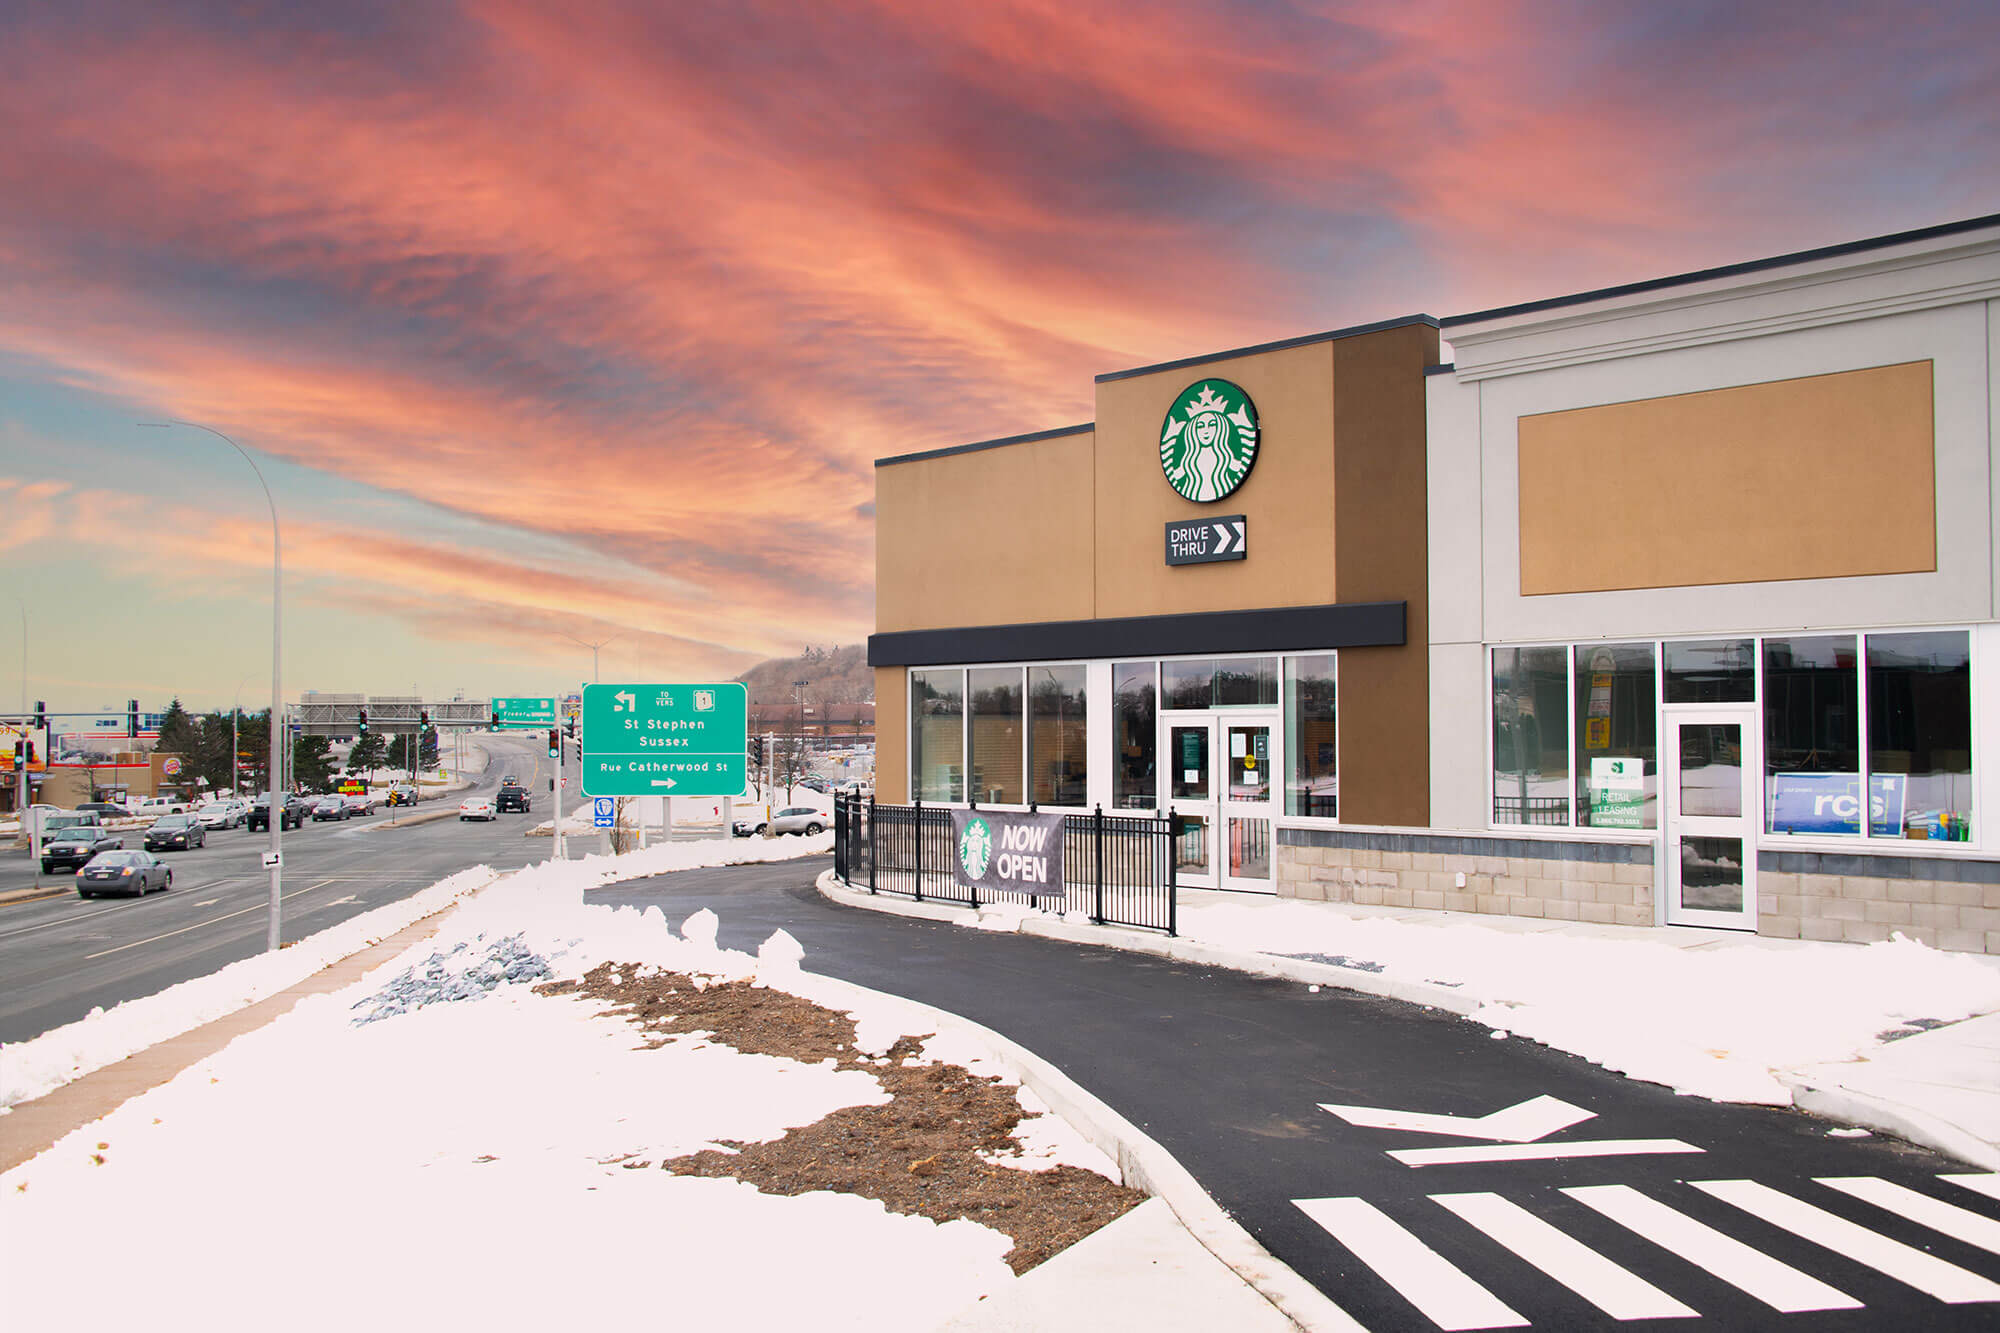 landscape with starbucks and sunset